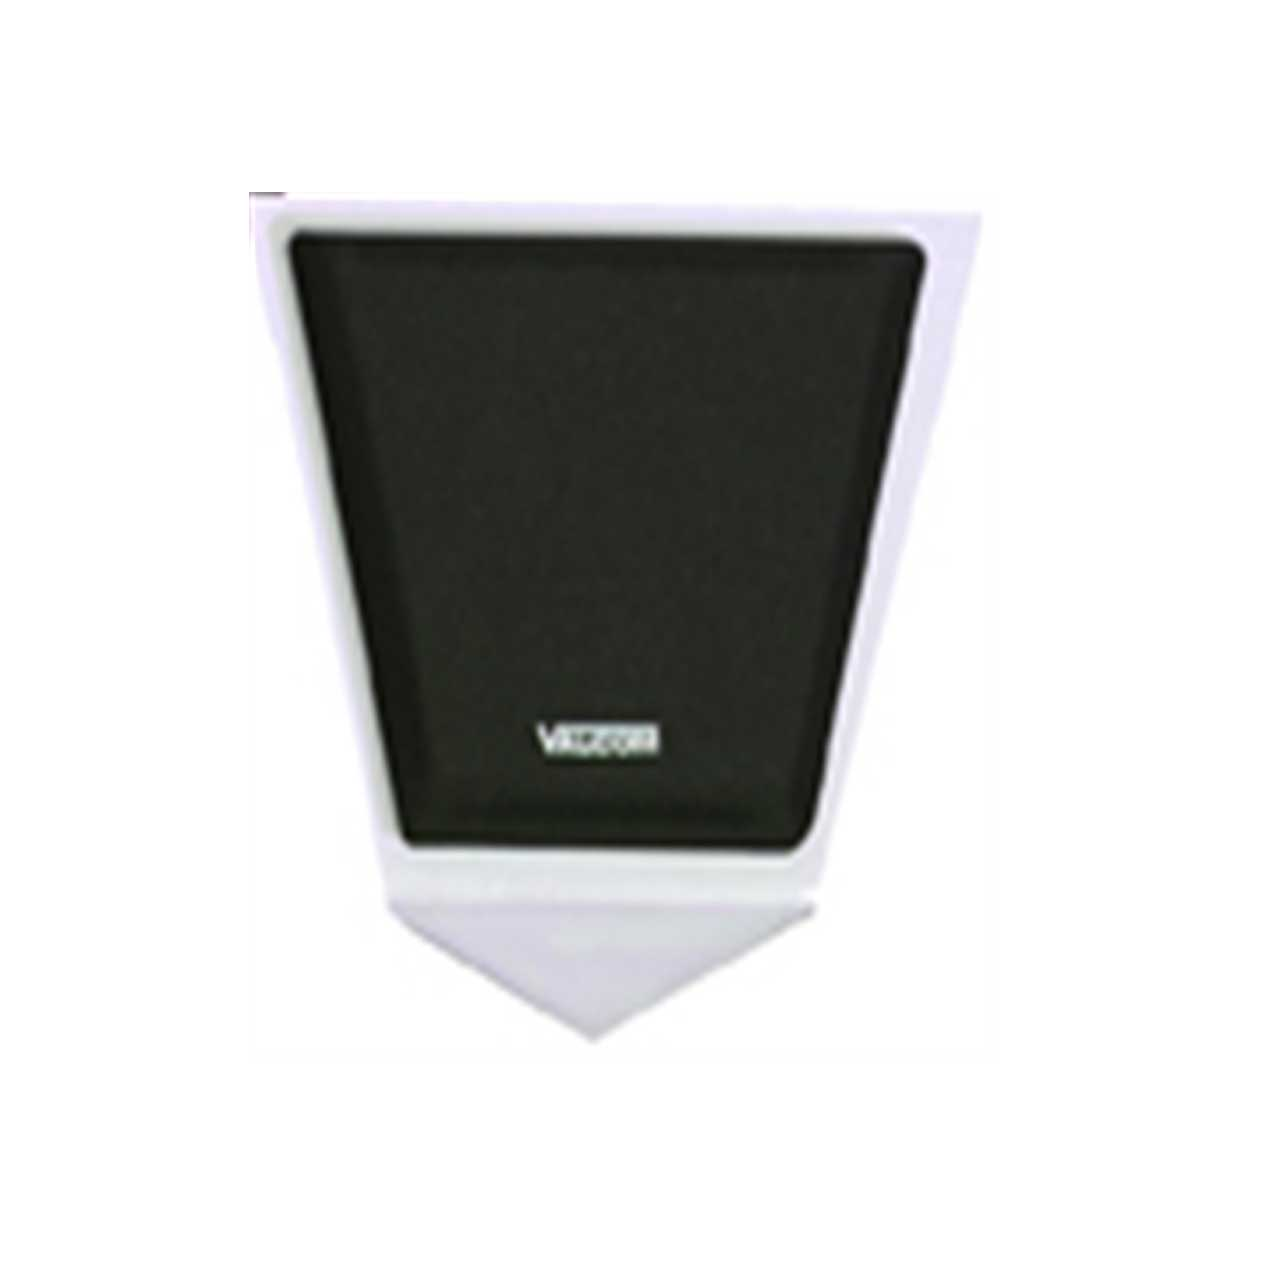 valcom corner wall speaker  talkback  metal  v